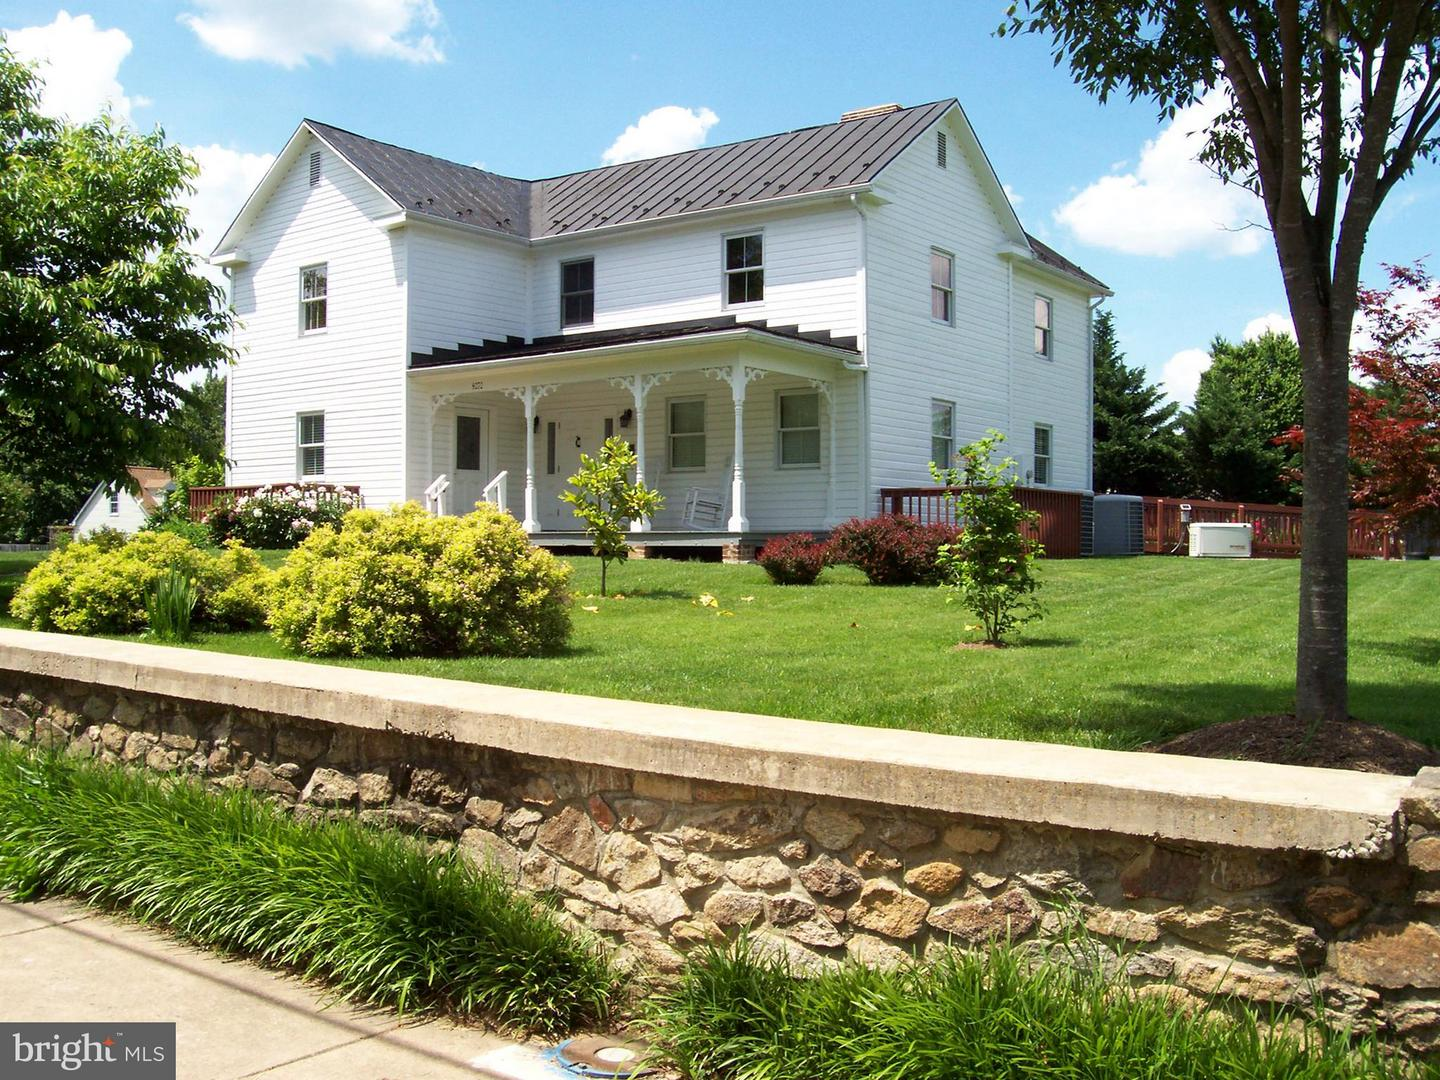 Other Residential for Rent at 8272 E. Main St E #b1a Marshall, Virginia 20115 United States